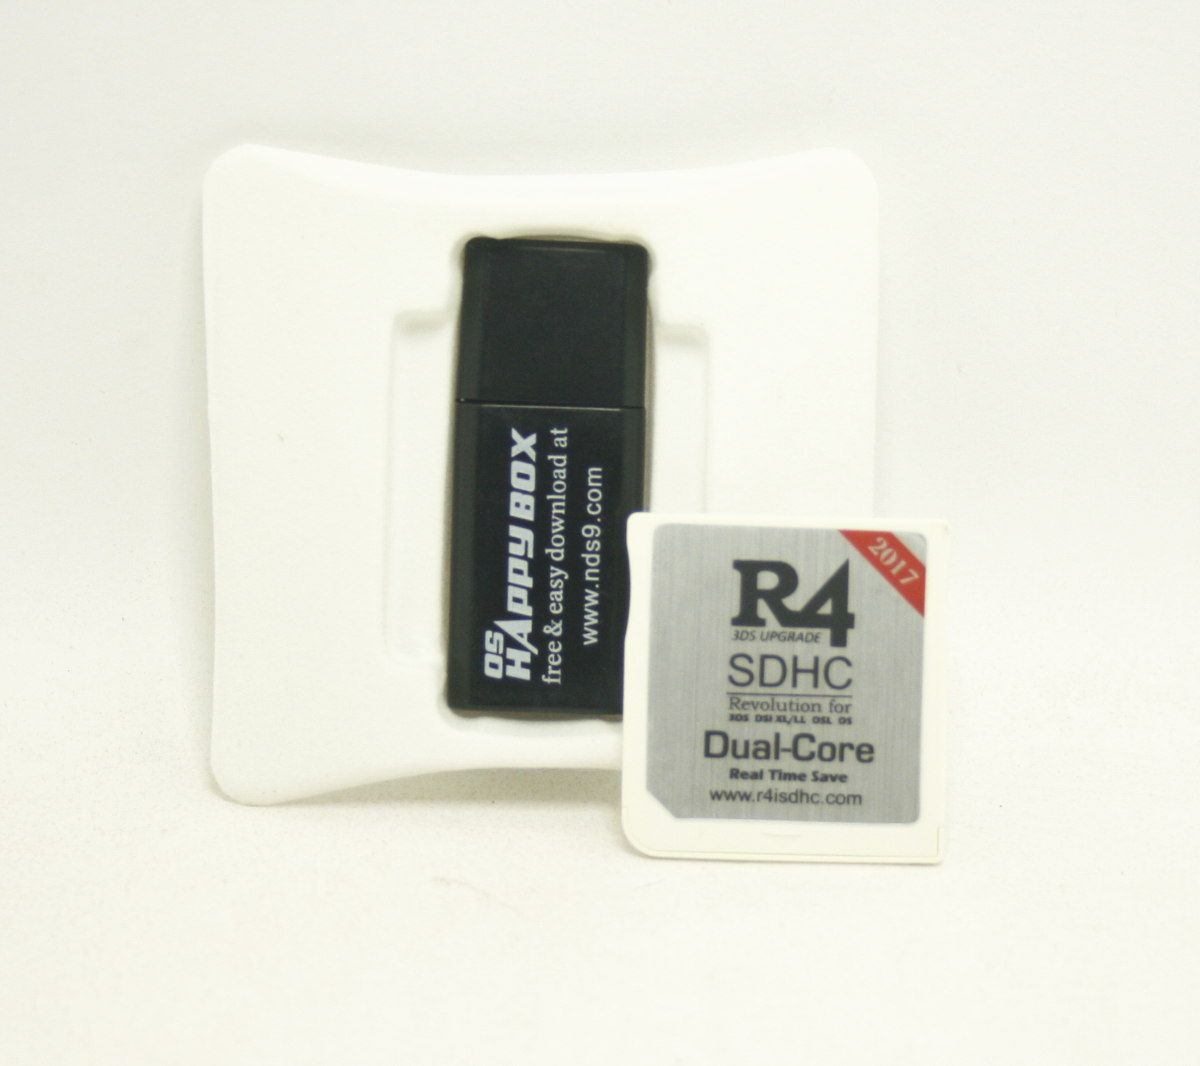 R4 3DS Upgrade  SDHC Dual Core RTS 2017 NTr Boot